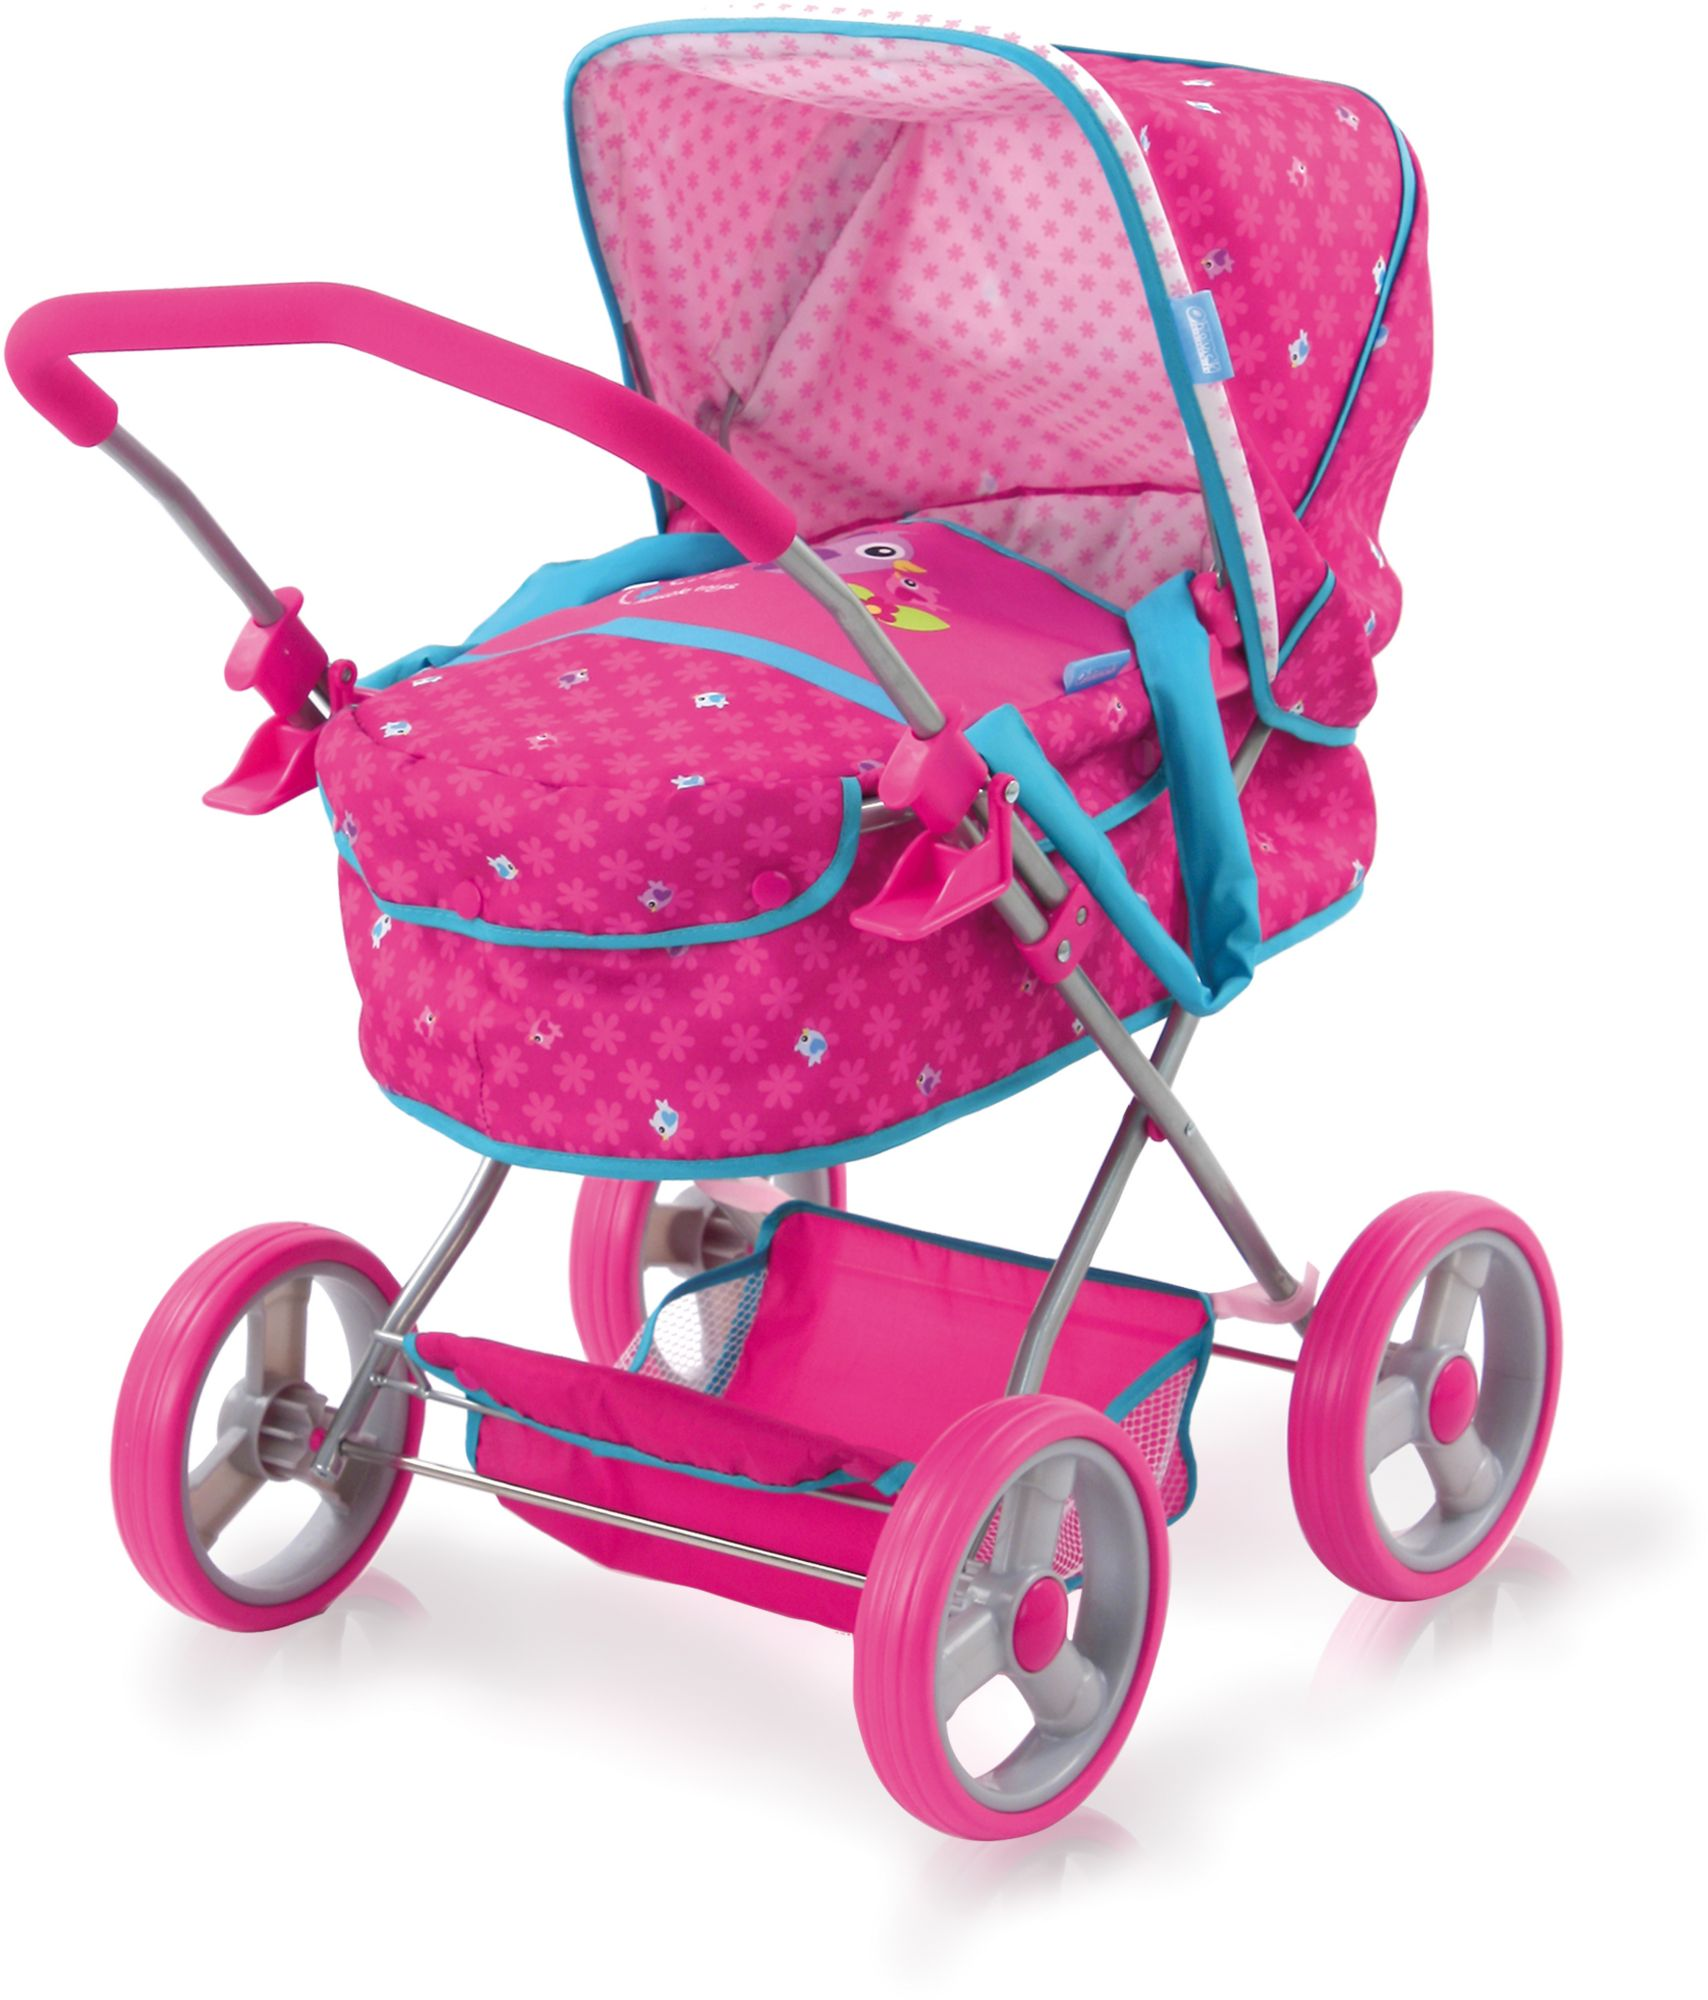 HAUCK TOYS FOR KIDS hauck TOYS FOR KIDS Puppenwagen, »Gini, Birdie Pink«